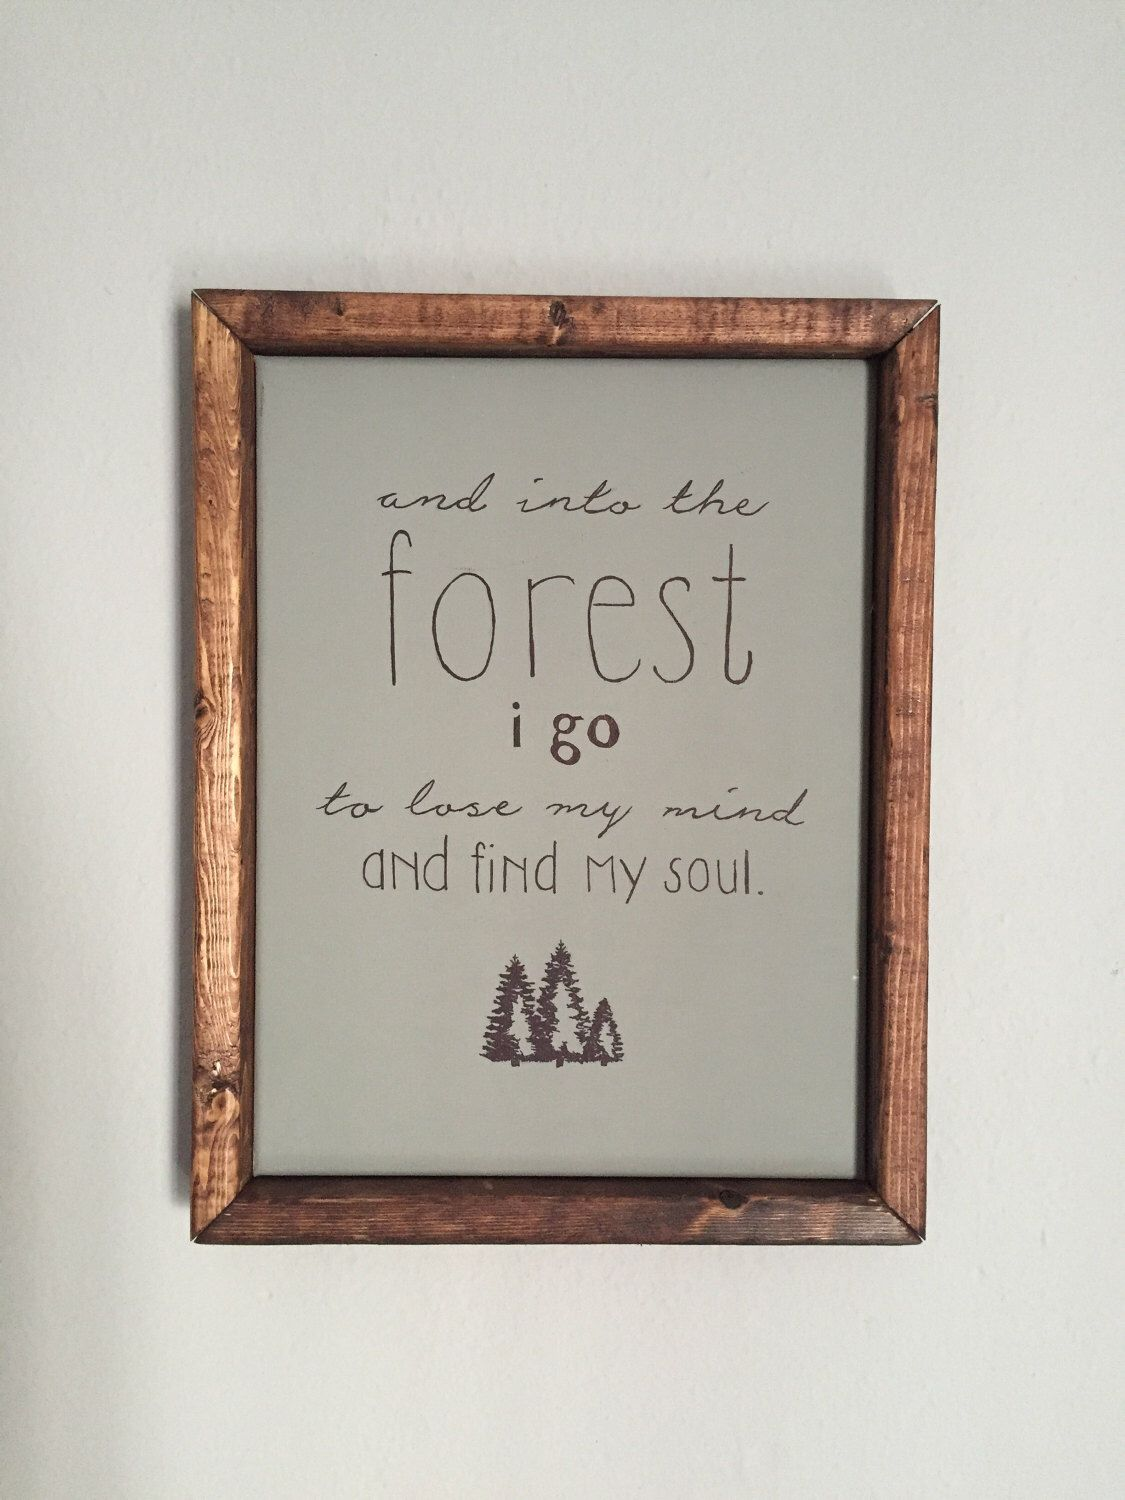 Custom Framed Quote Wall Art And Into The Forest I Go To Lose My